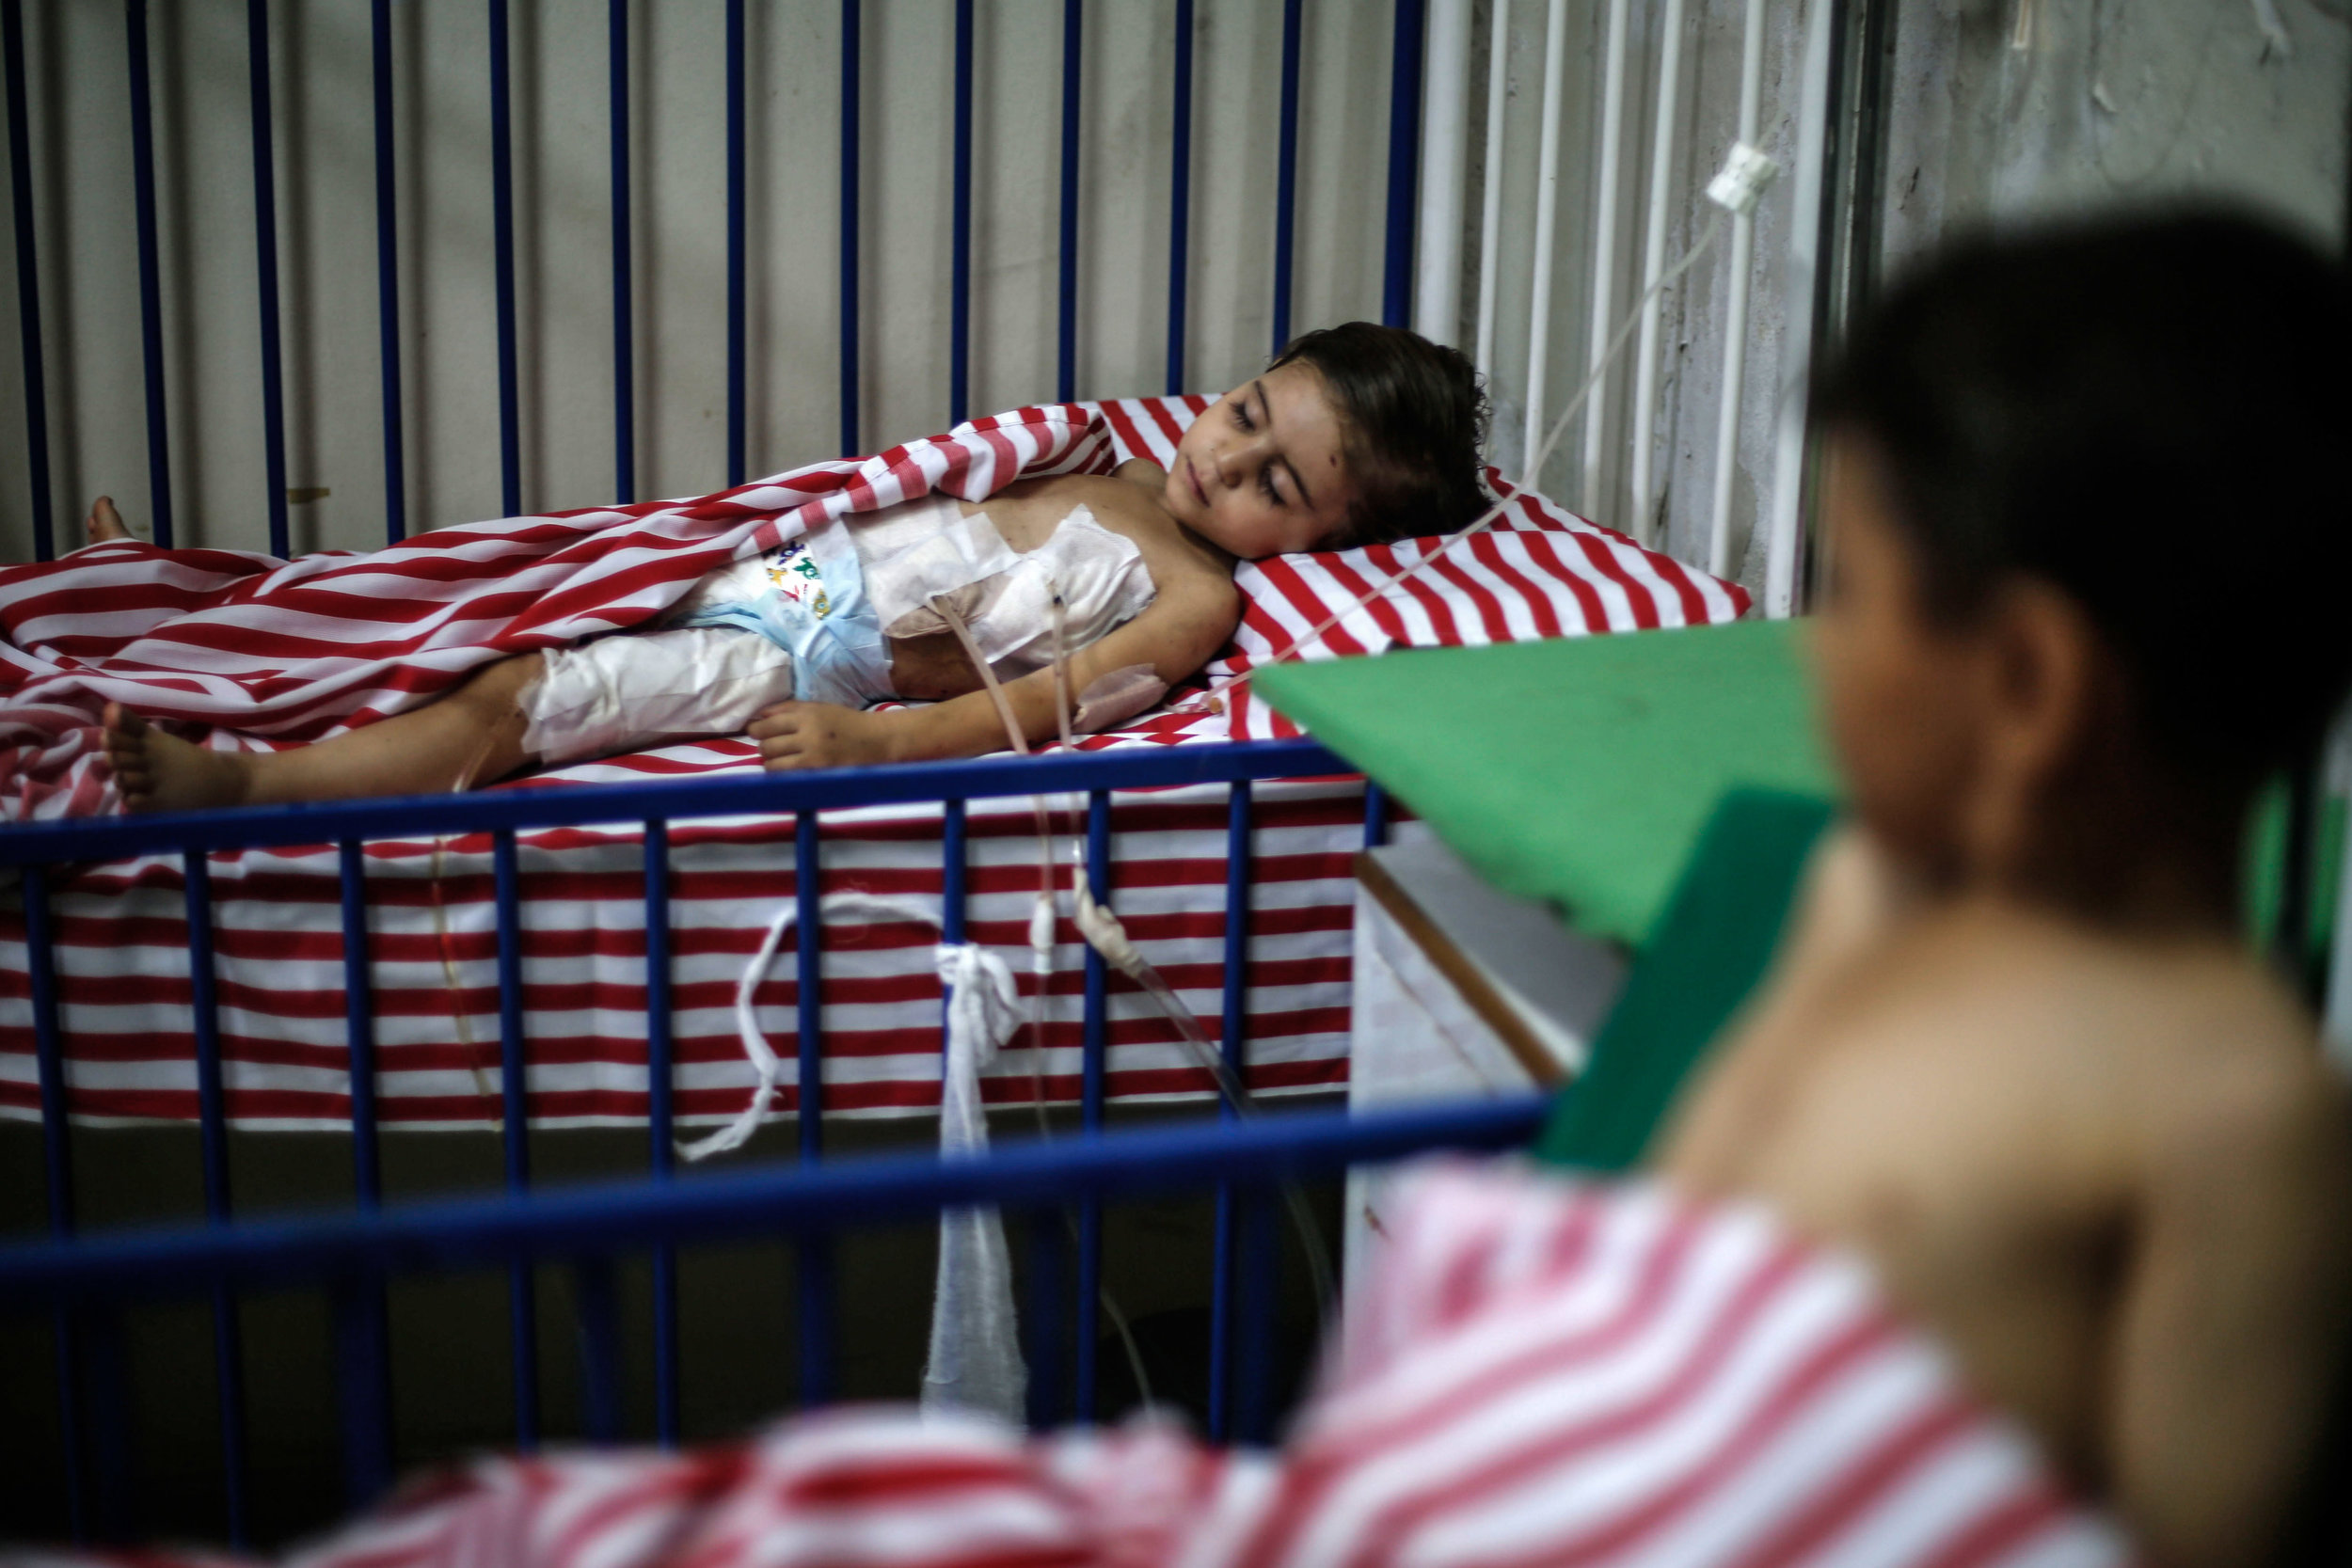 - Maya, a 4-year-old Syrian girl, lies in an underground hospital bed after she was injured the day before following air strikes by Syrian government forces on a marketplace in the city of Douma, on August 17, 2015.